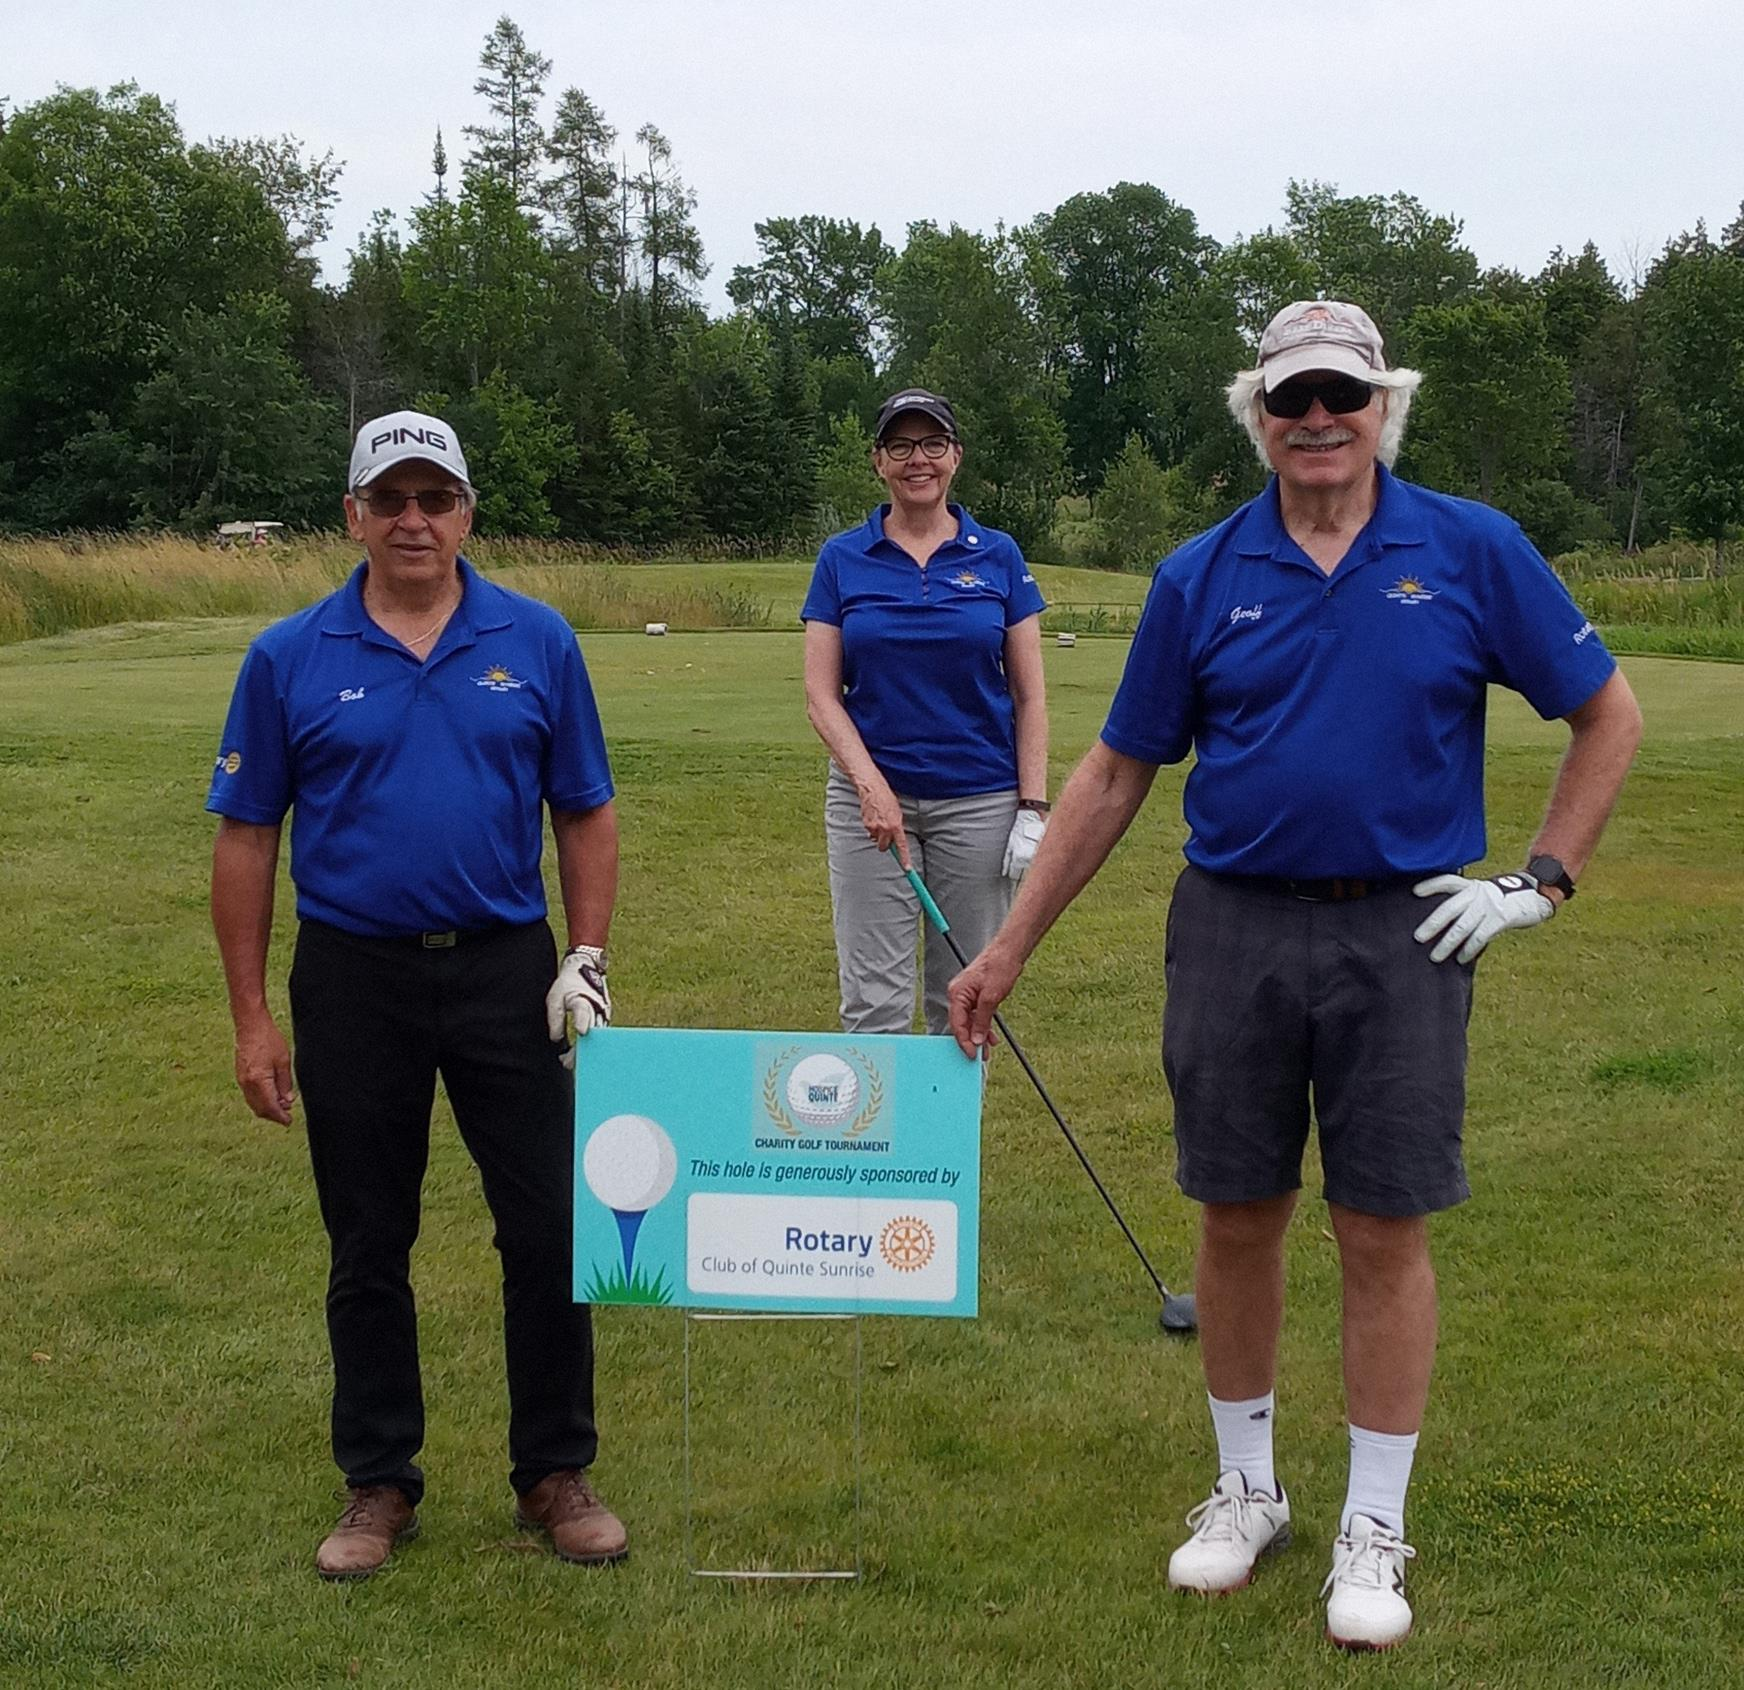 Members of the Rotary Club of Quinte Sunrise standing by the hole the club sponsored